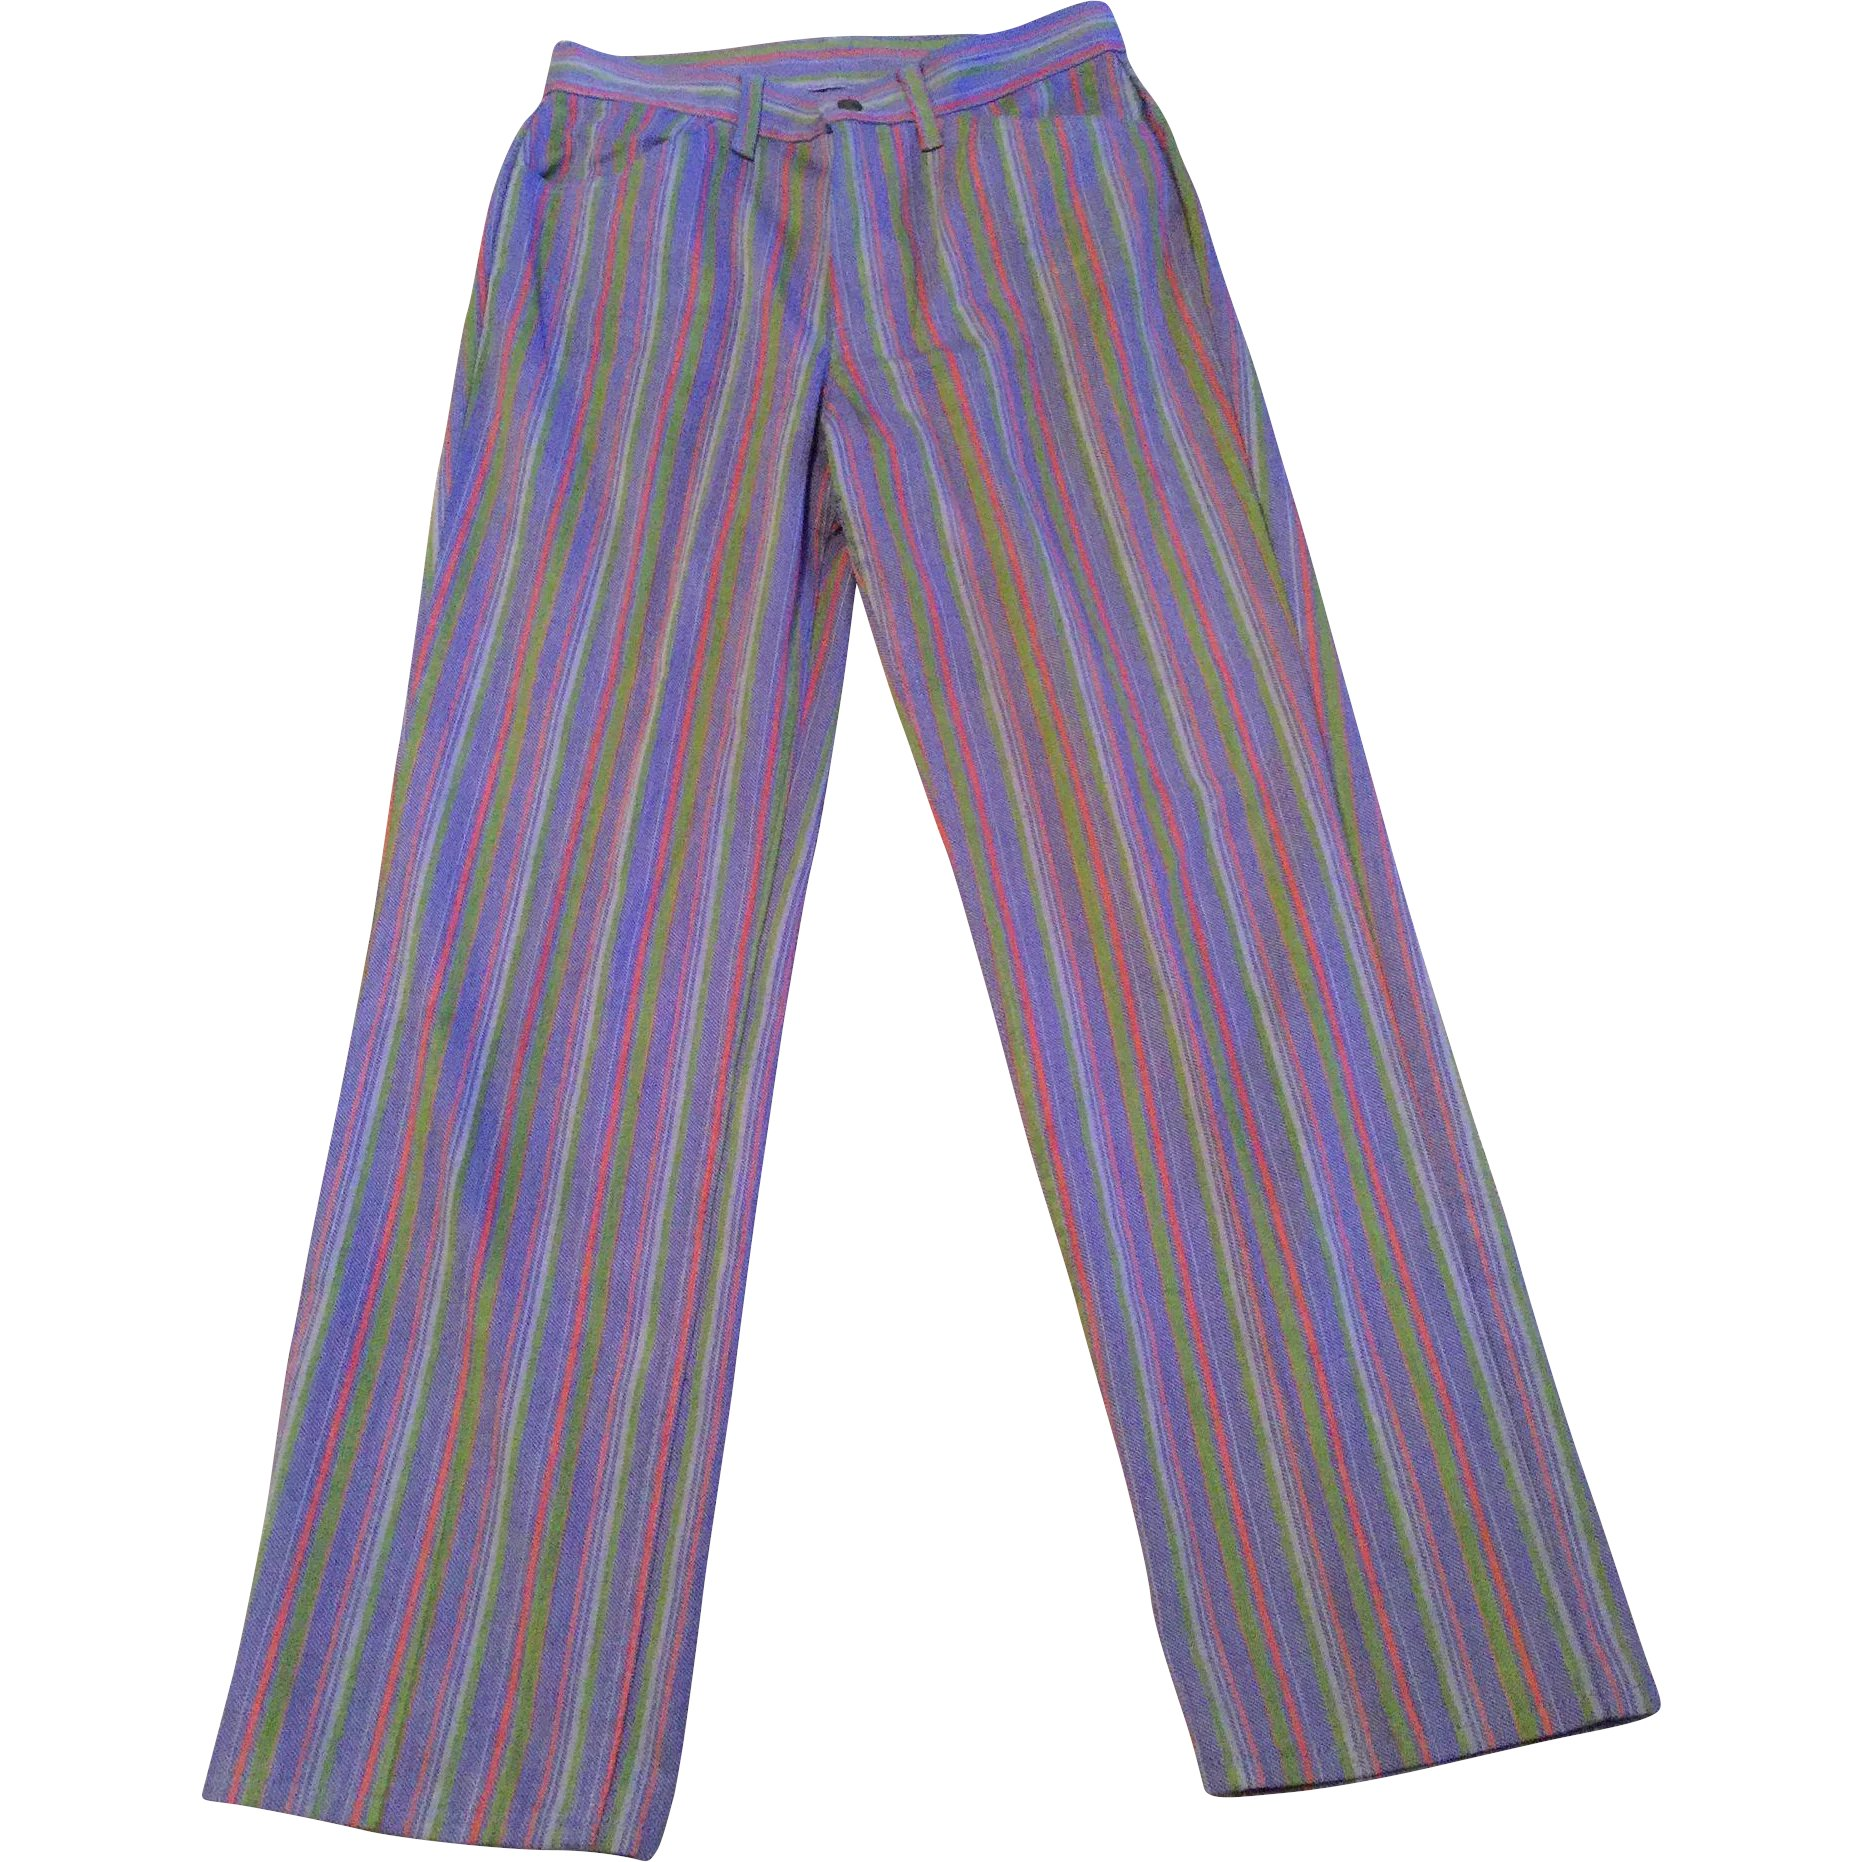 84dbb6be Vintage 1960's 70's Big E Levi's Sta-Prest Purple Stripe Jeans : Kim's  Collectibles | Ruby Lane